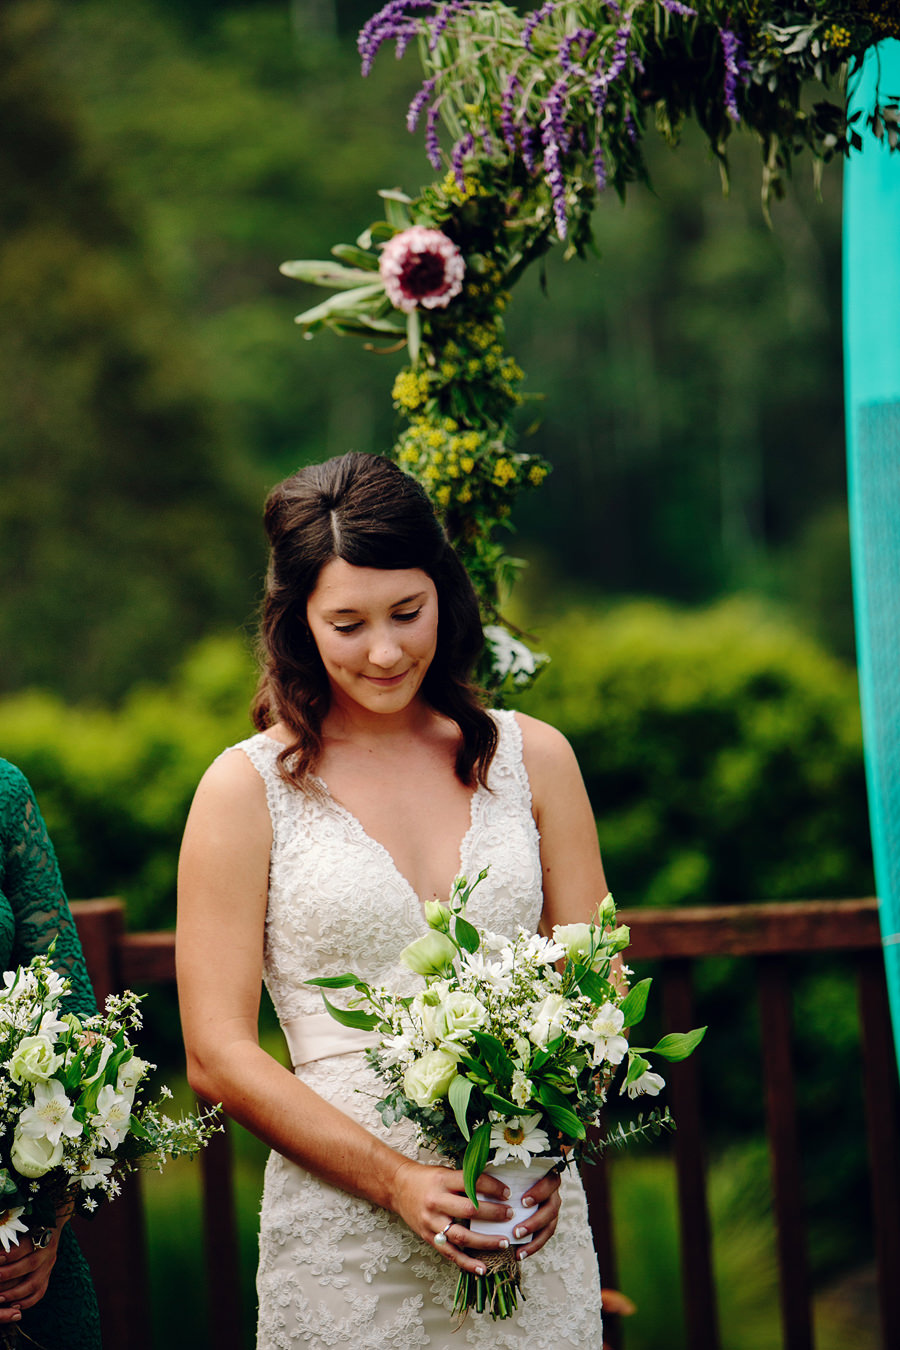 Coffs Harbour Hinterland Wedding Photographers: Ceremony